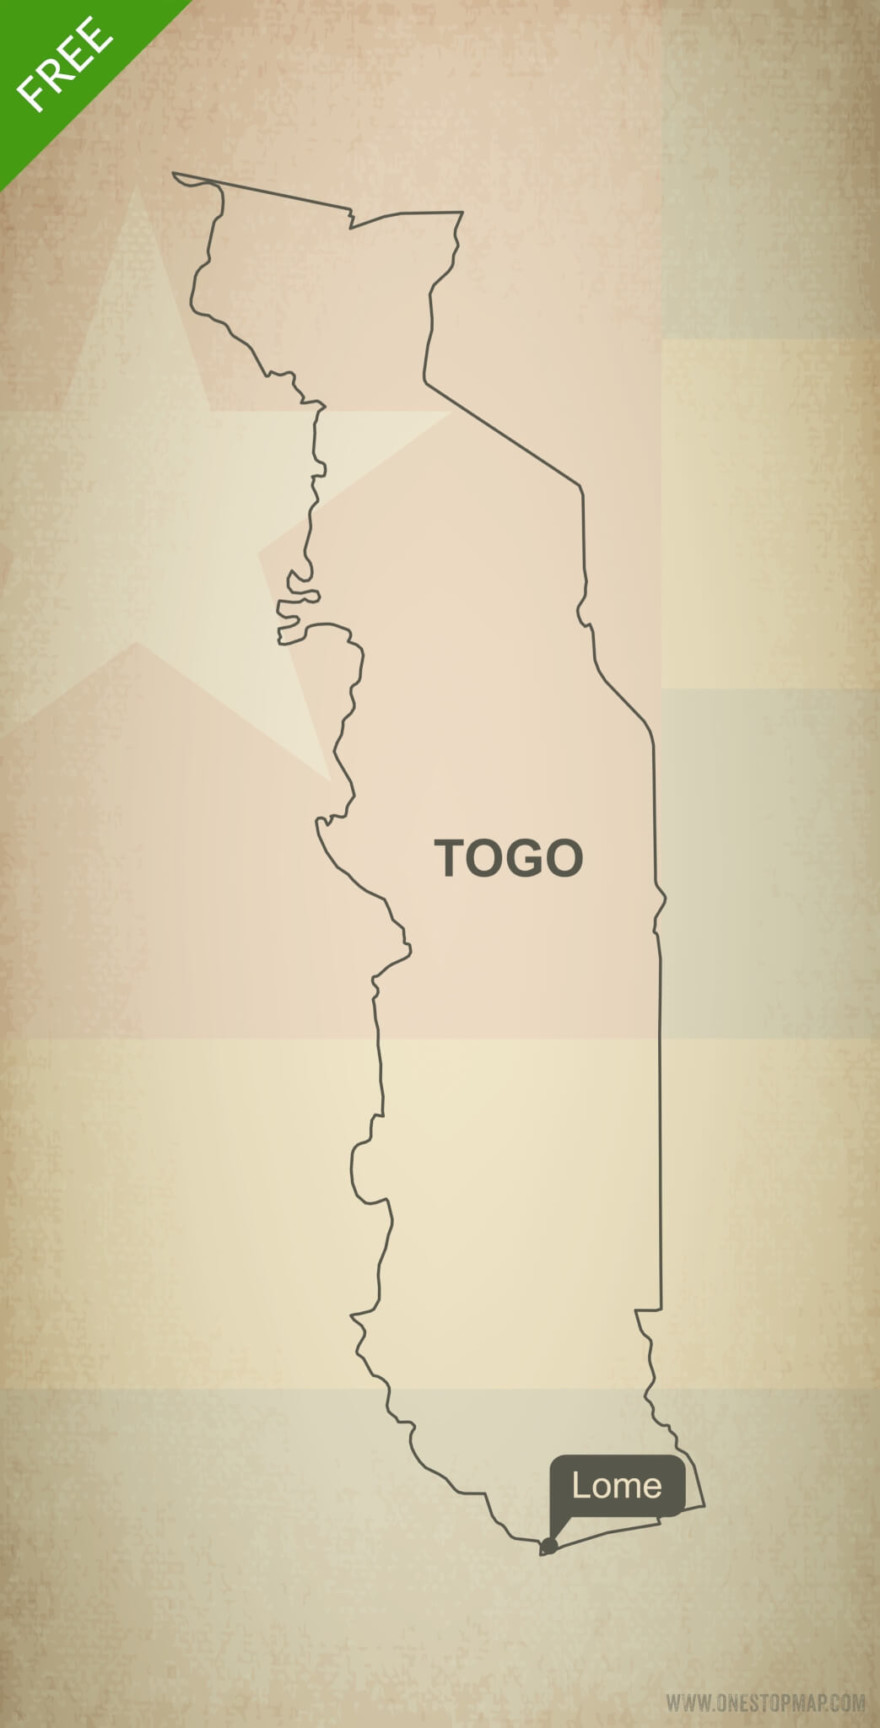 Free vector map of Togo outline